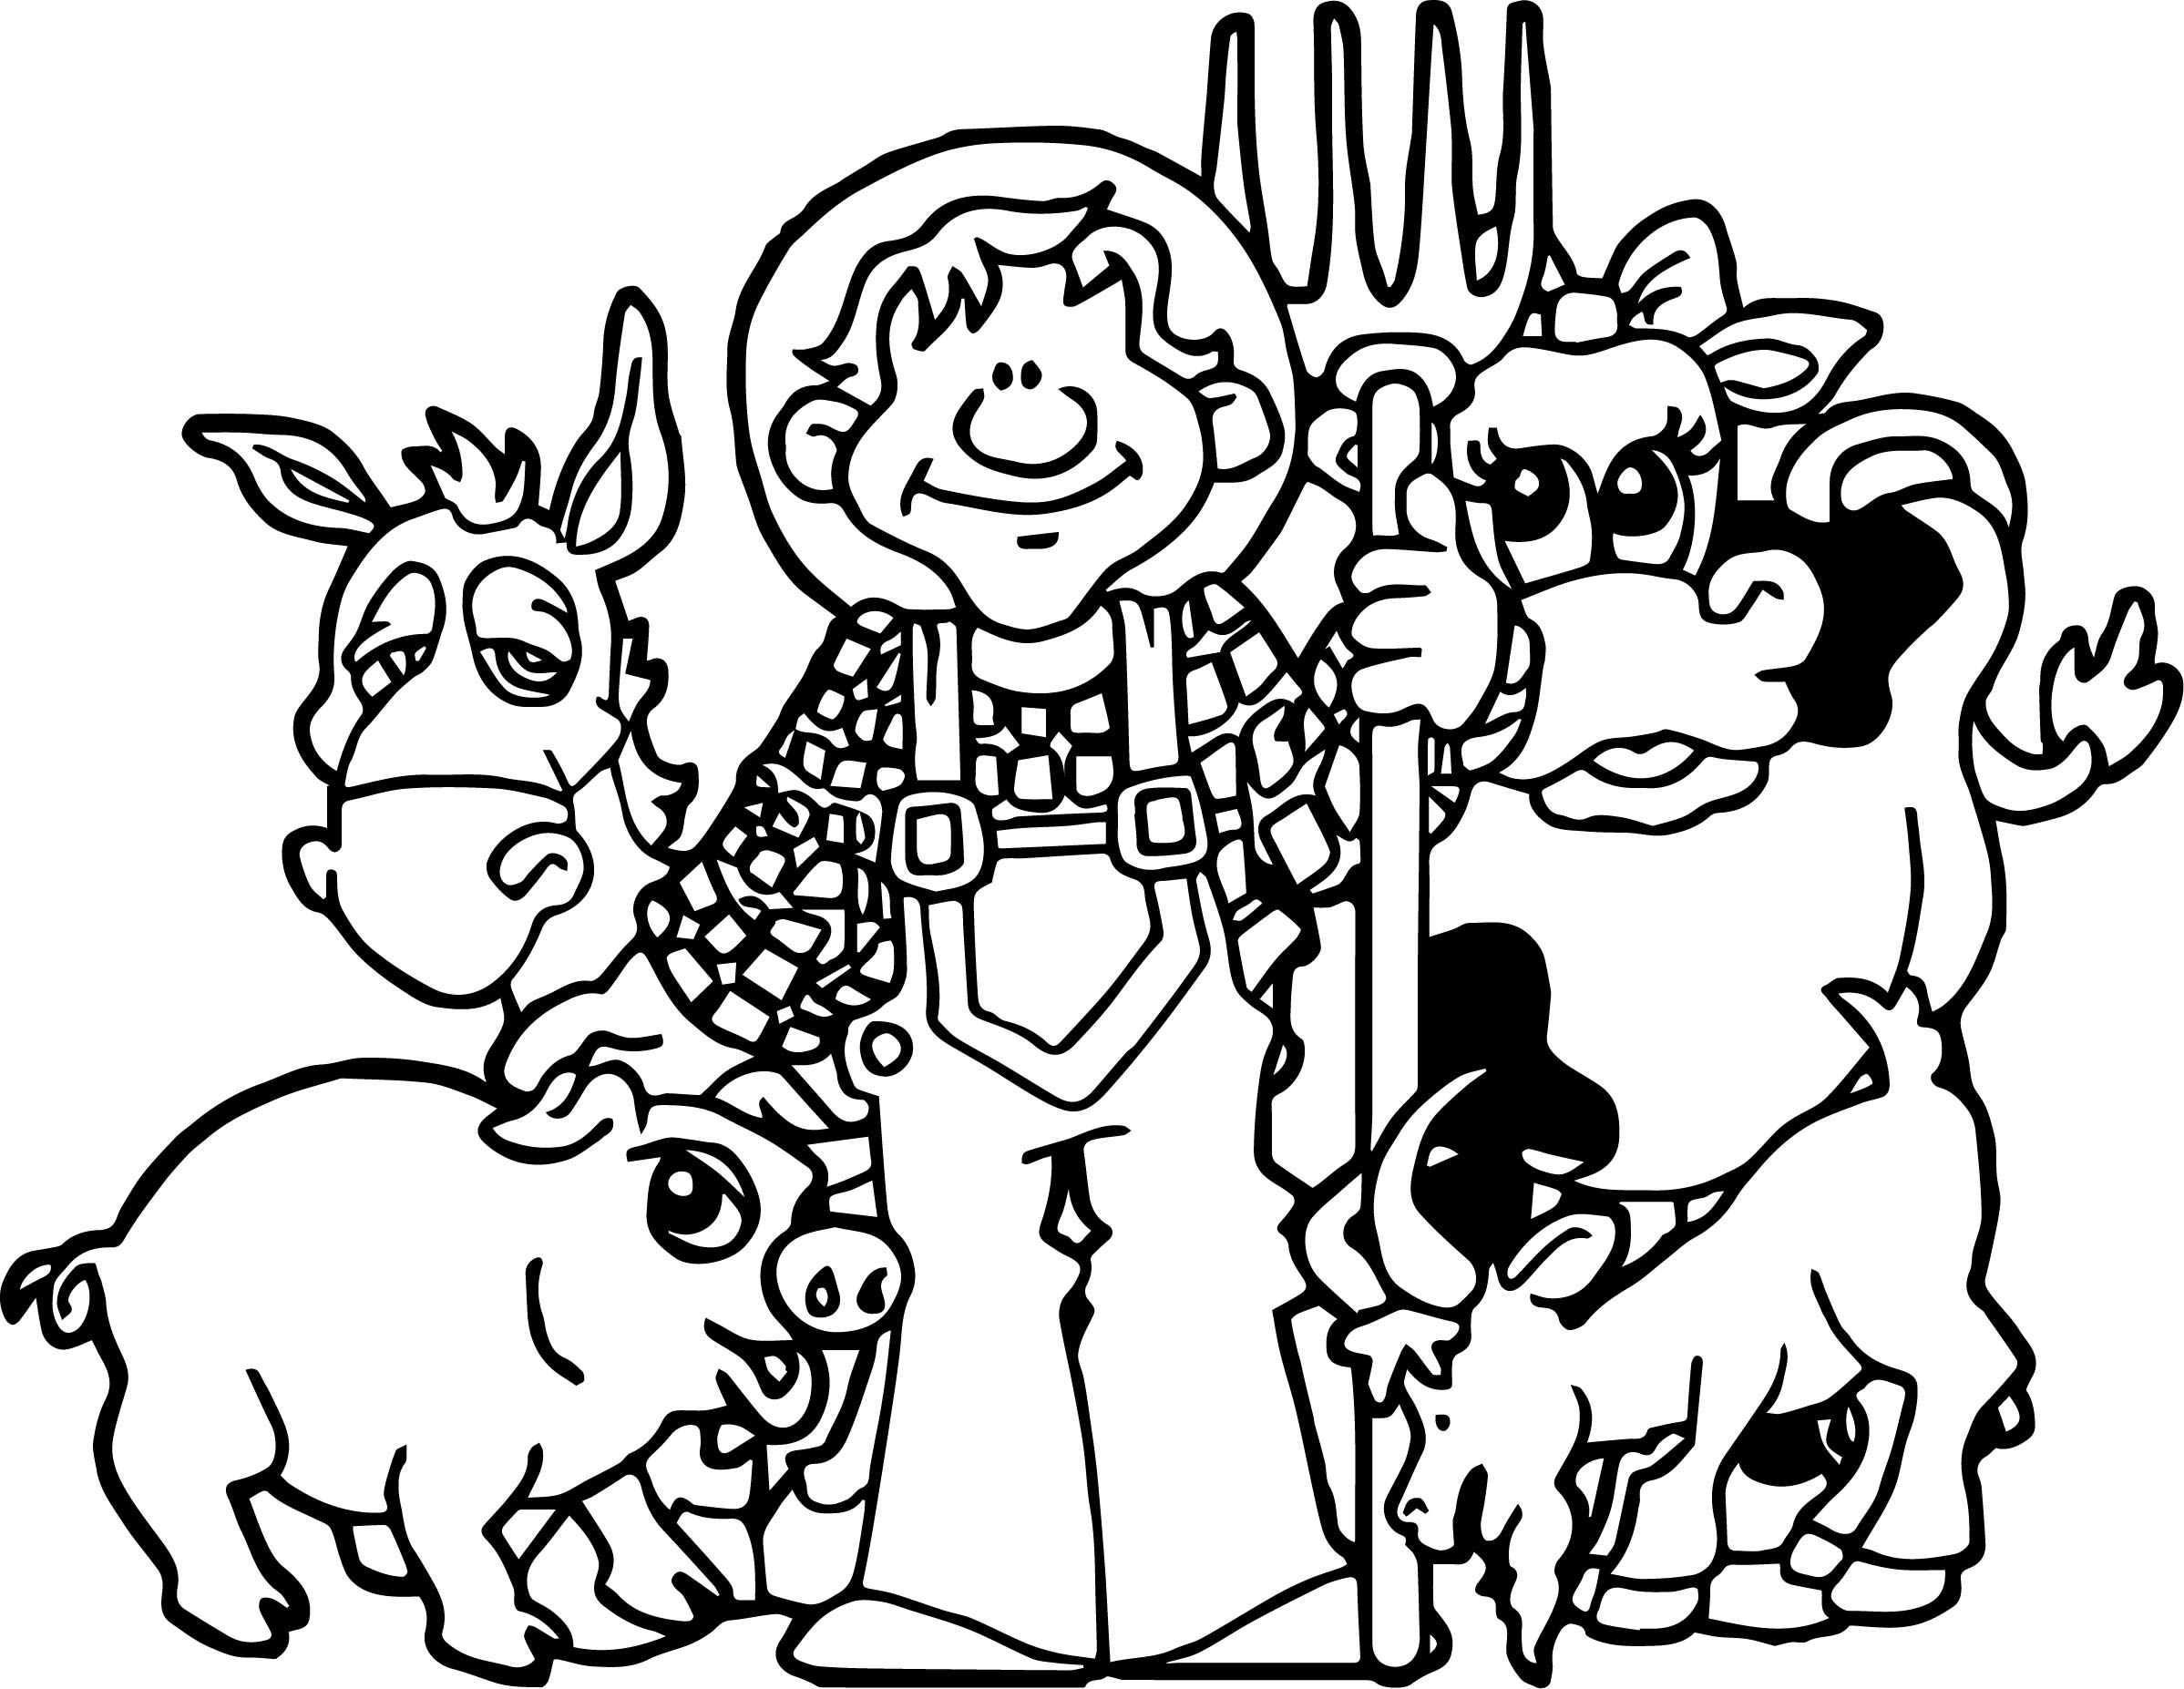 Baby Farm Animal Family Coloring Page